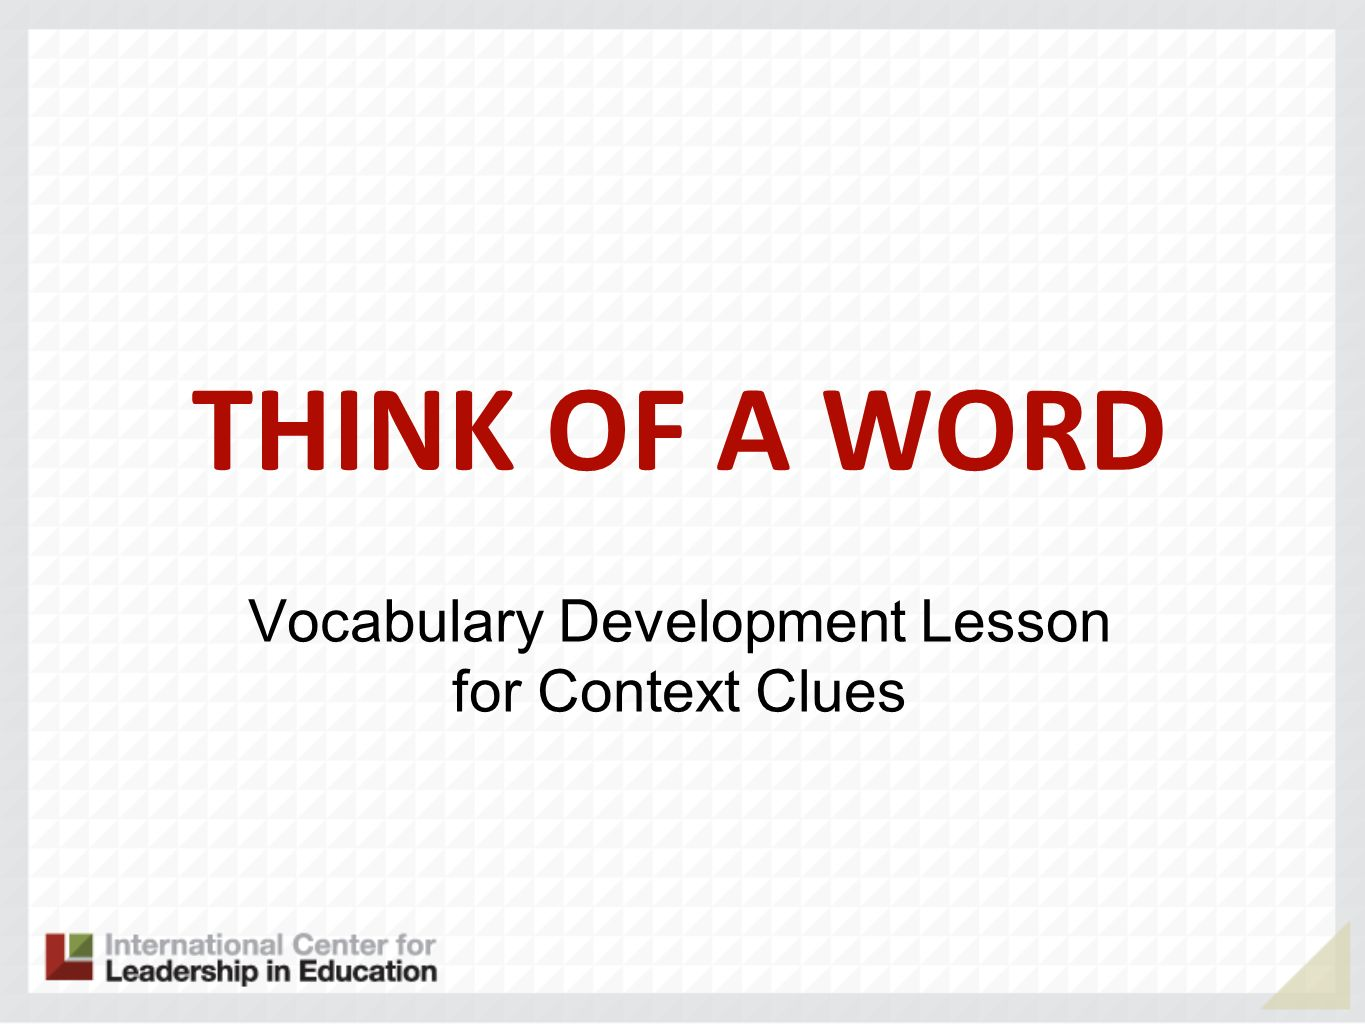 THINK OF A WORD Vocabulary Development Lesson for Context Clues